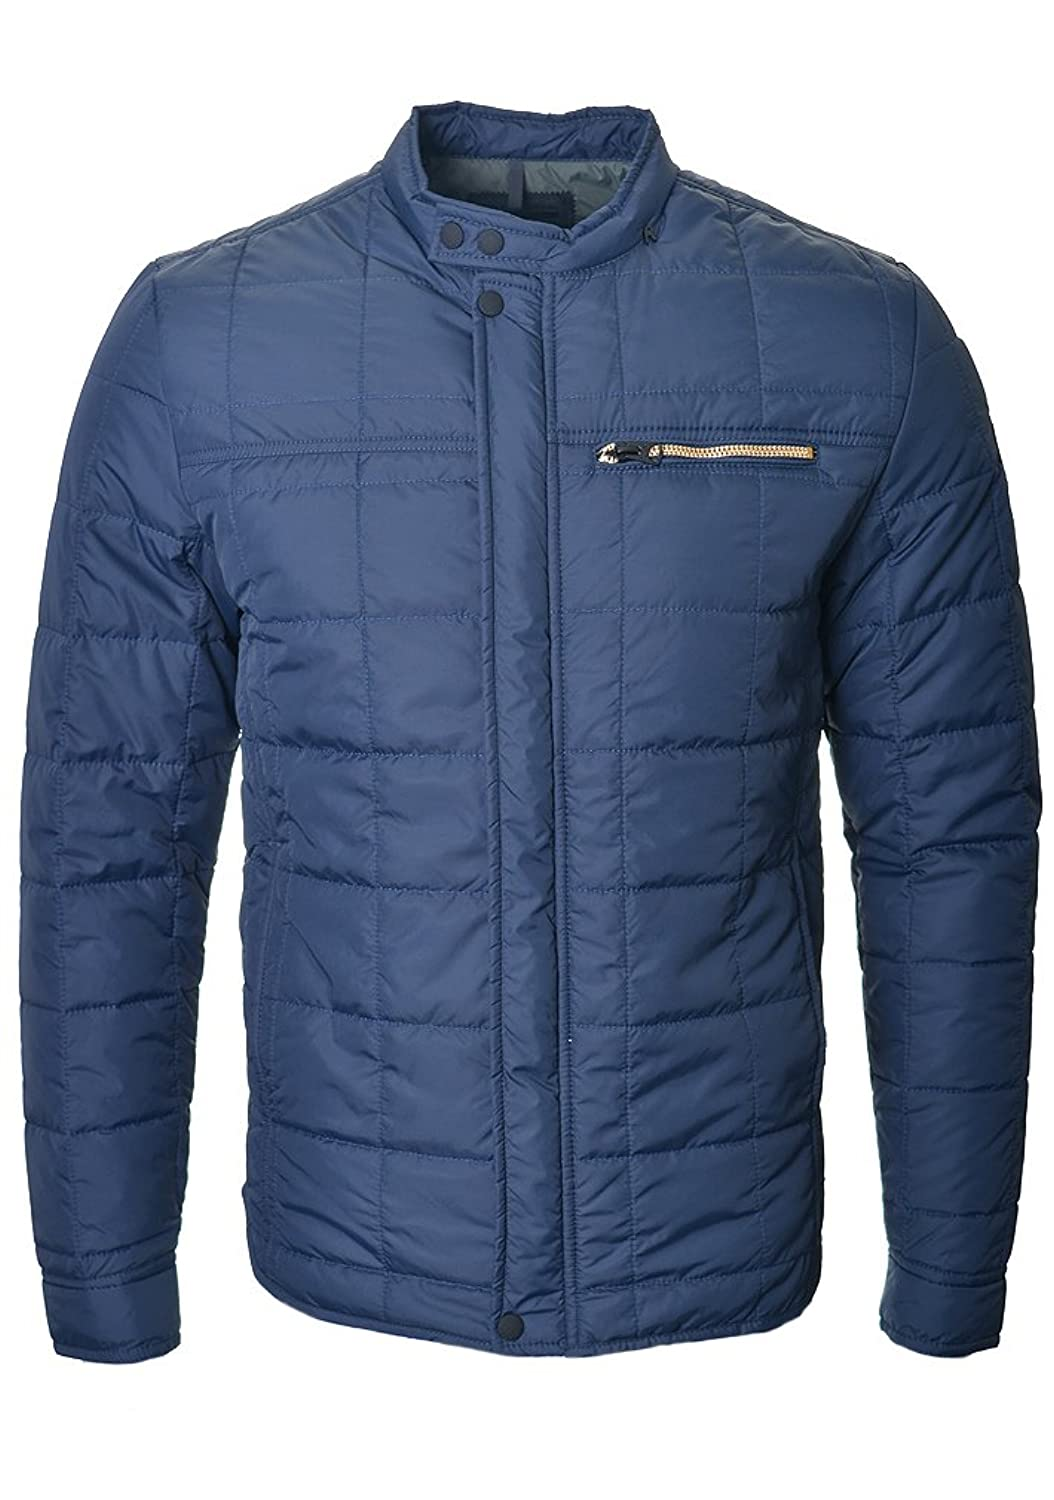 Replay Herren Zip Pocket Padded Jacket, Blau bestellen